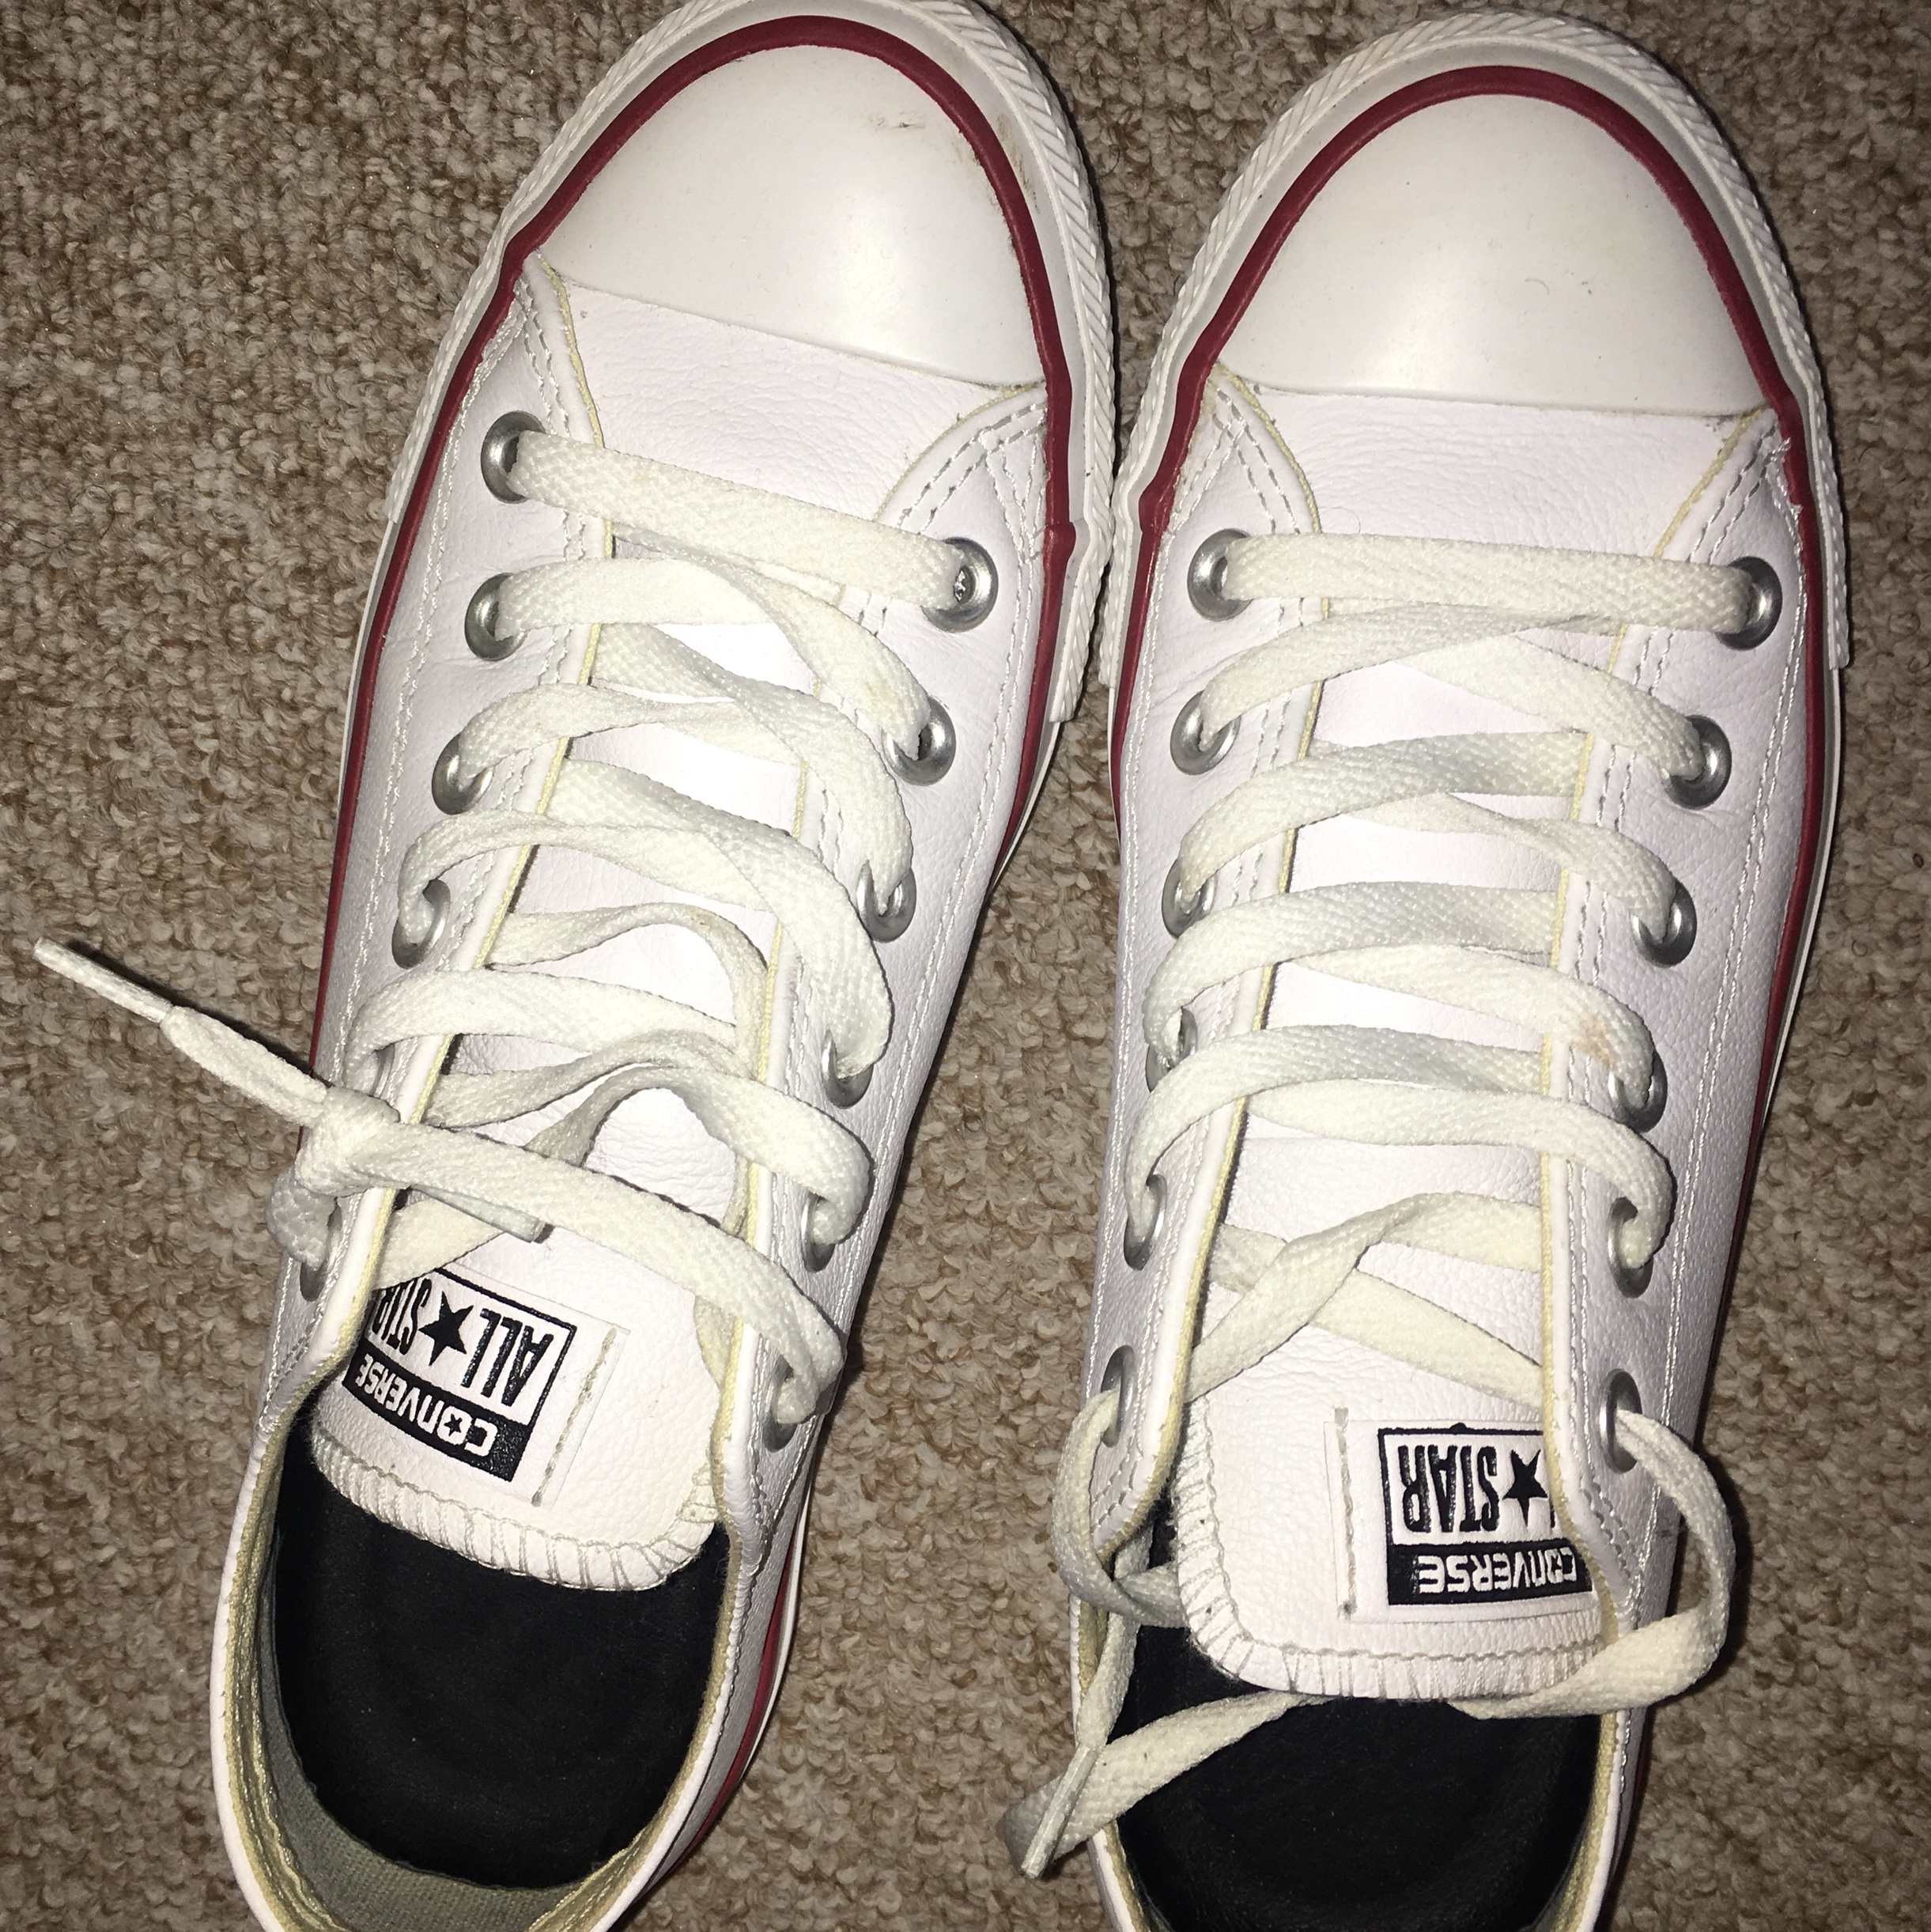 Size 5 Converse white leather trainers with Depop